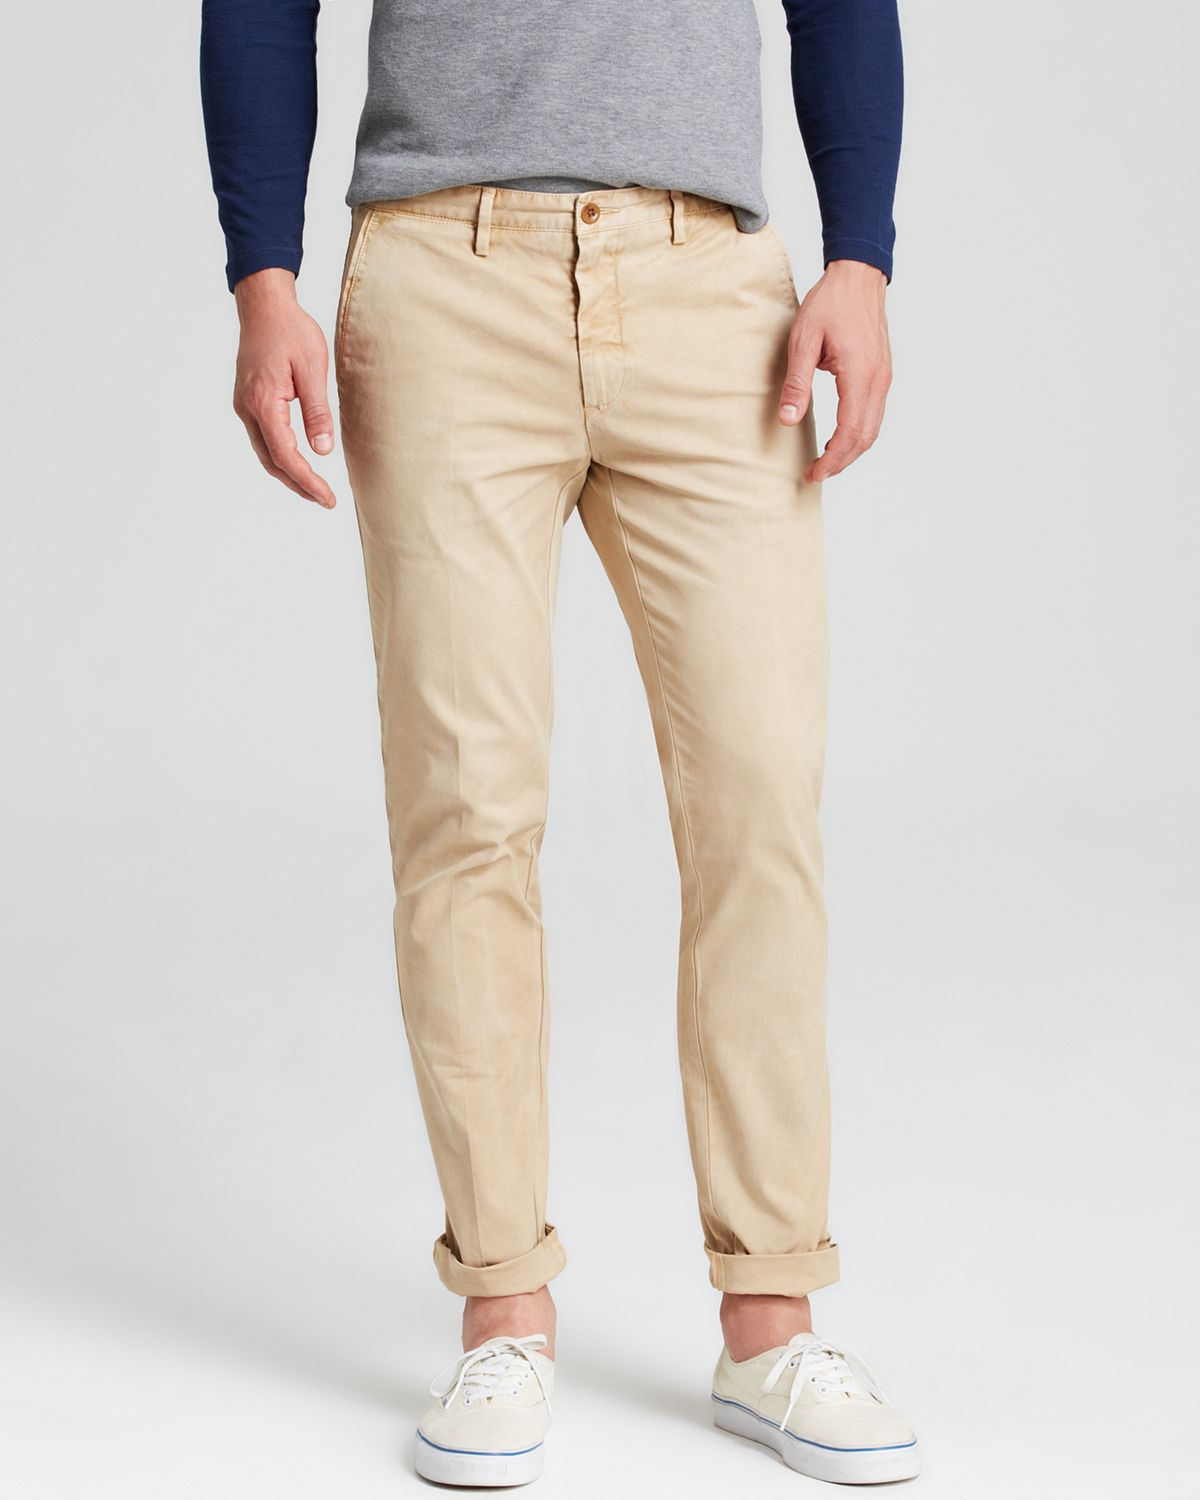 Gant rugger Broken Twill Chino Pants in Natural for Men | Lyst